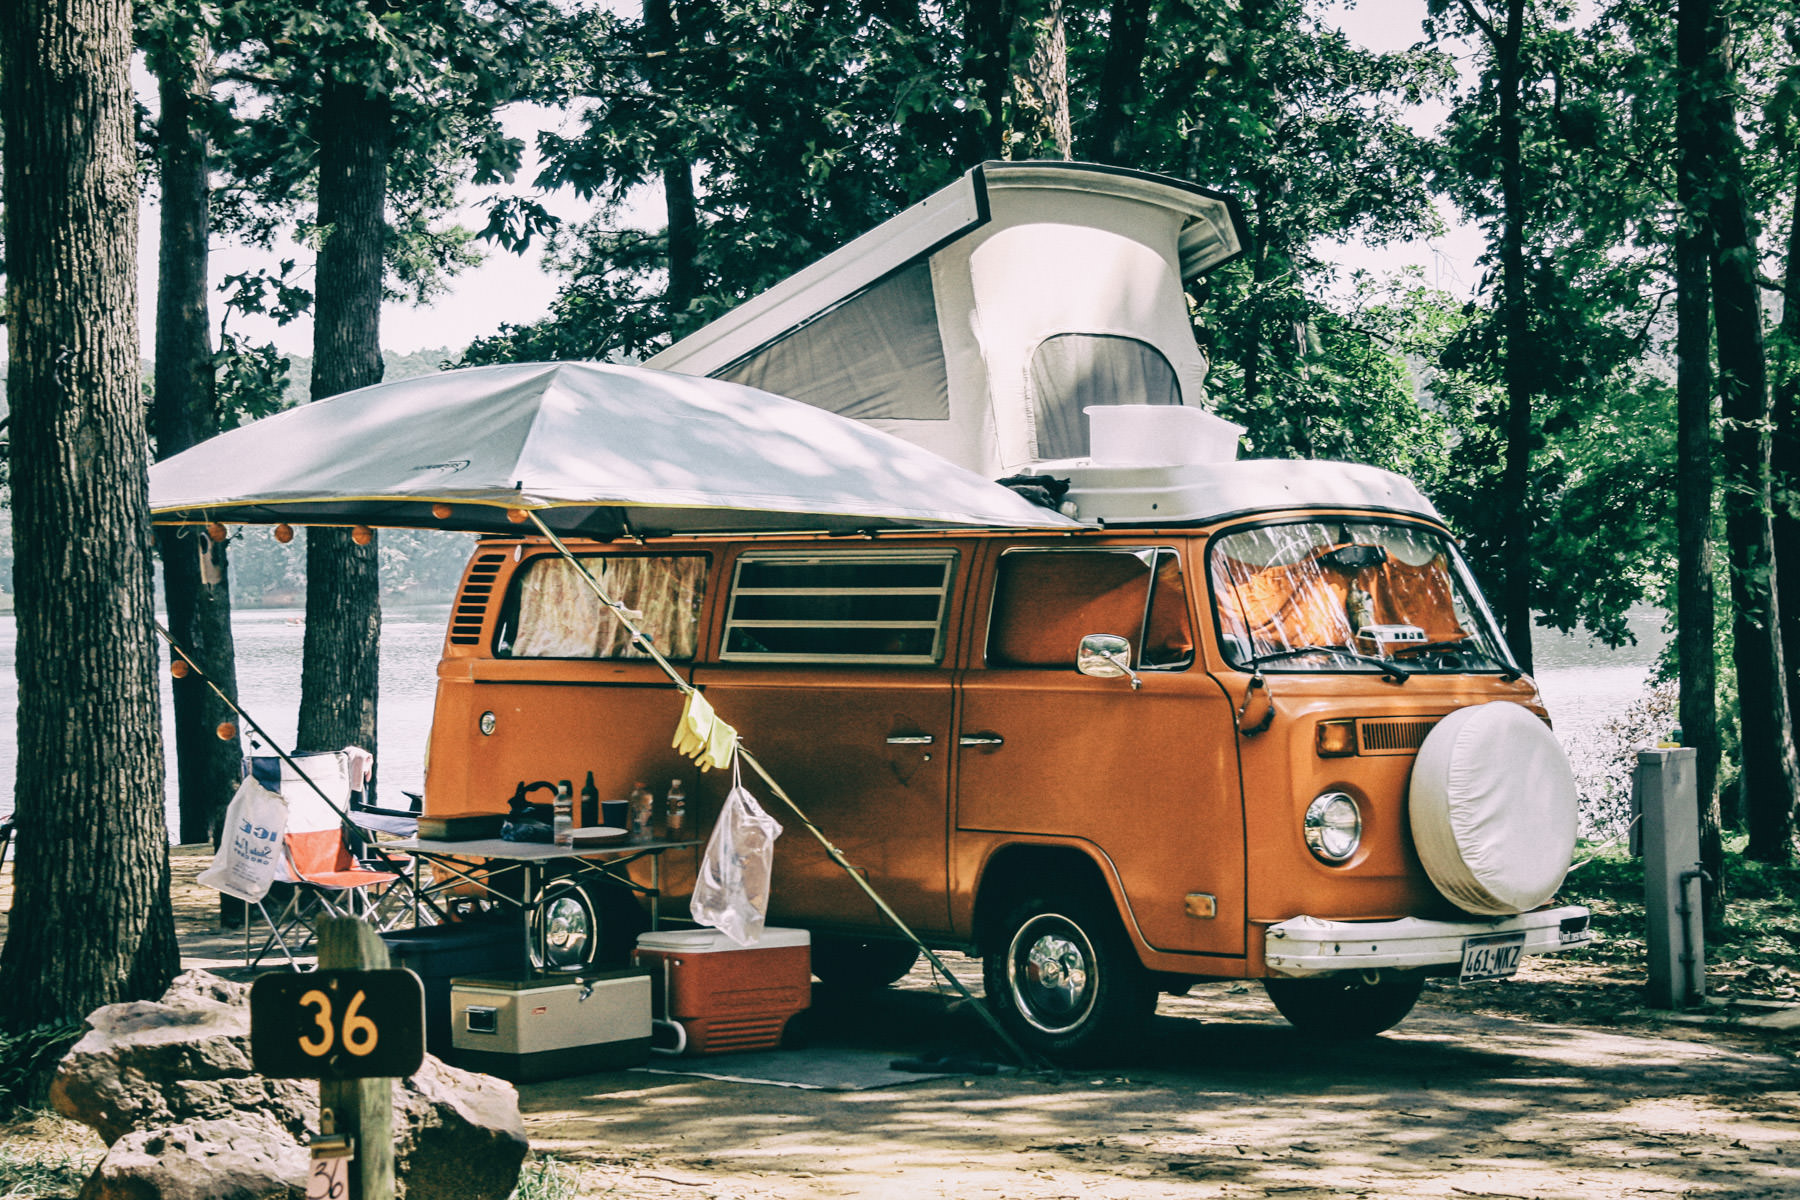 I spotted this Volkswagen Type 2 camper a while back at Tyler (Texas) State Park. When I was a little kid, waaaay back in the 70s, my parents had one of these, but I only have vague memories of it, which is kind of sad, I guess.